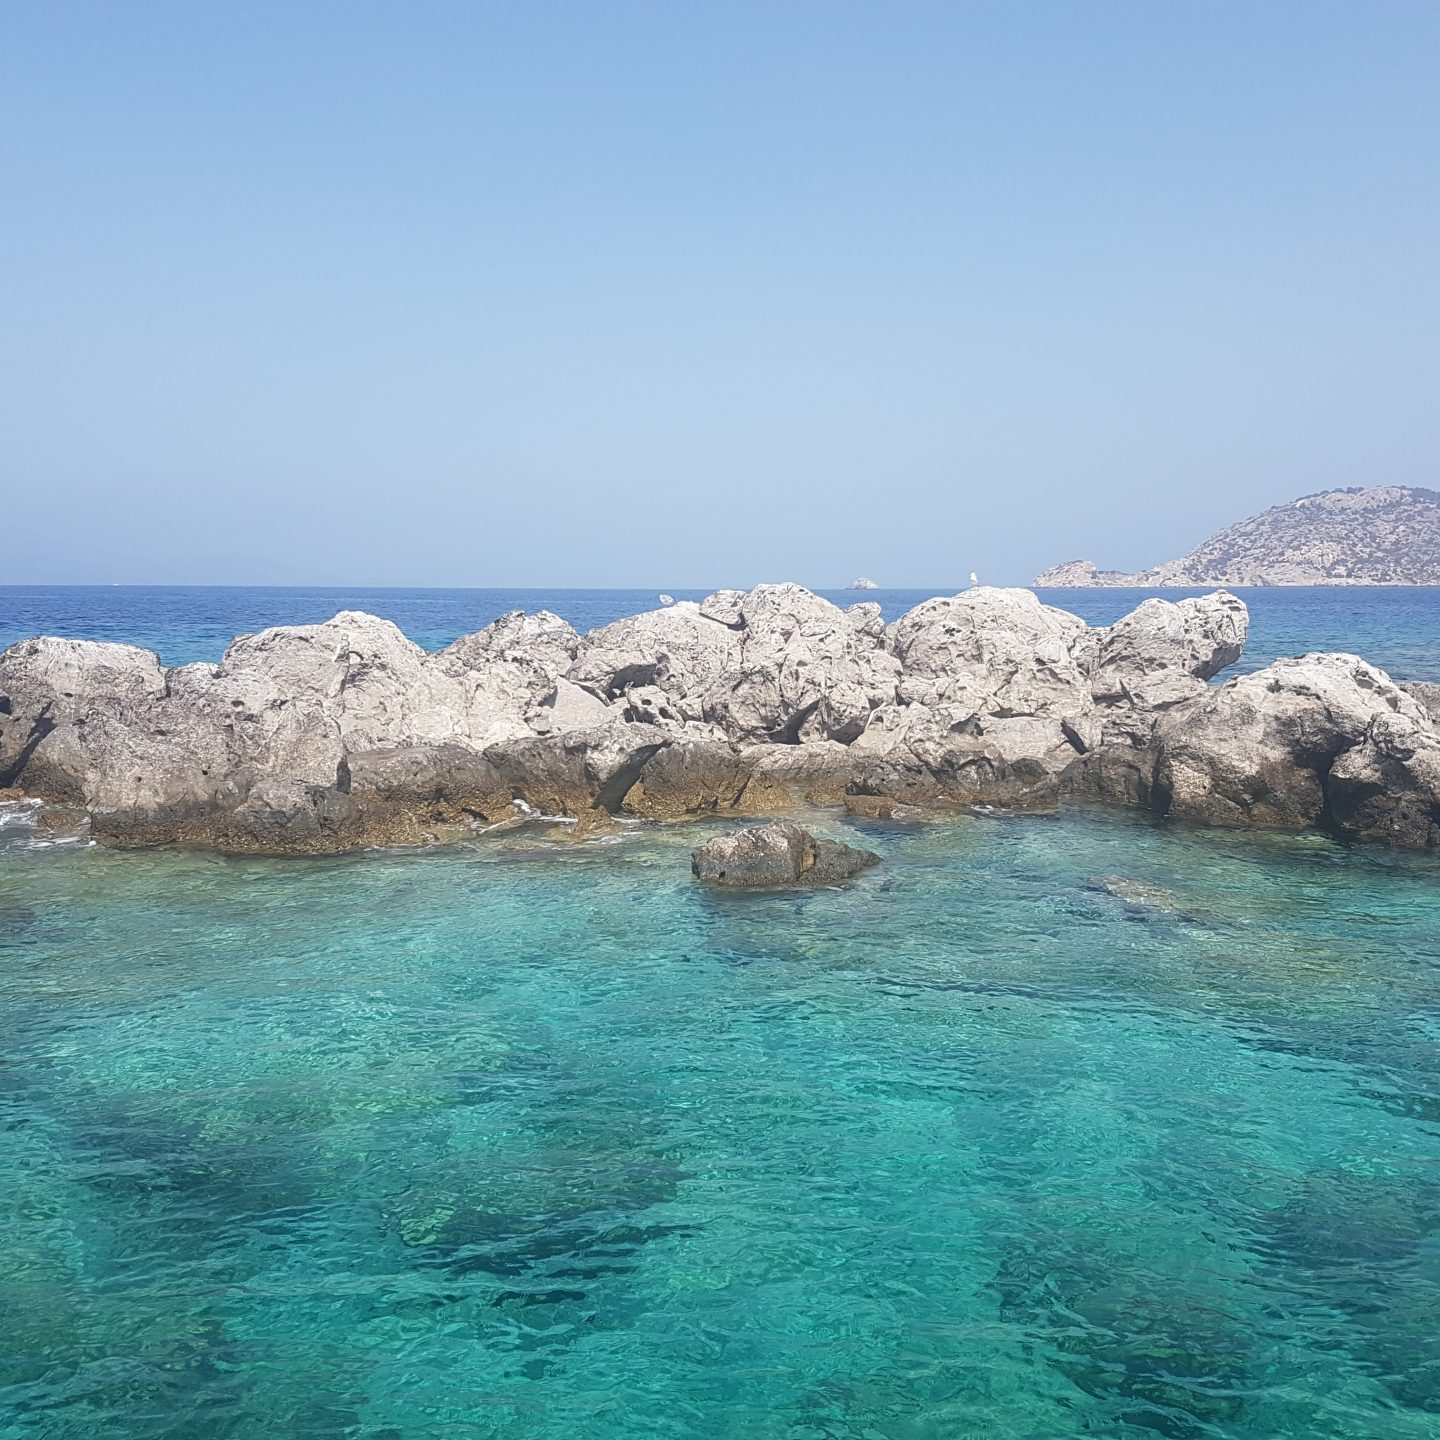 A cruise around Symi Island, Greece - one of the top things to do!